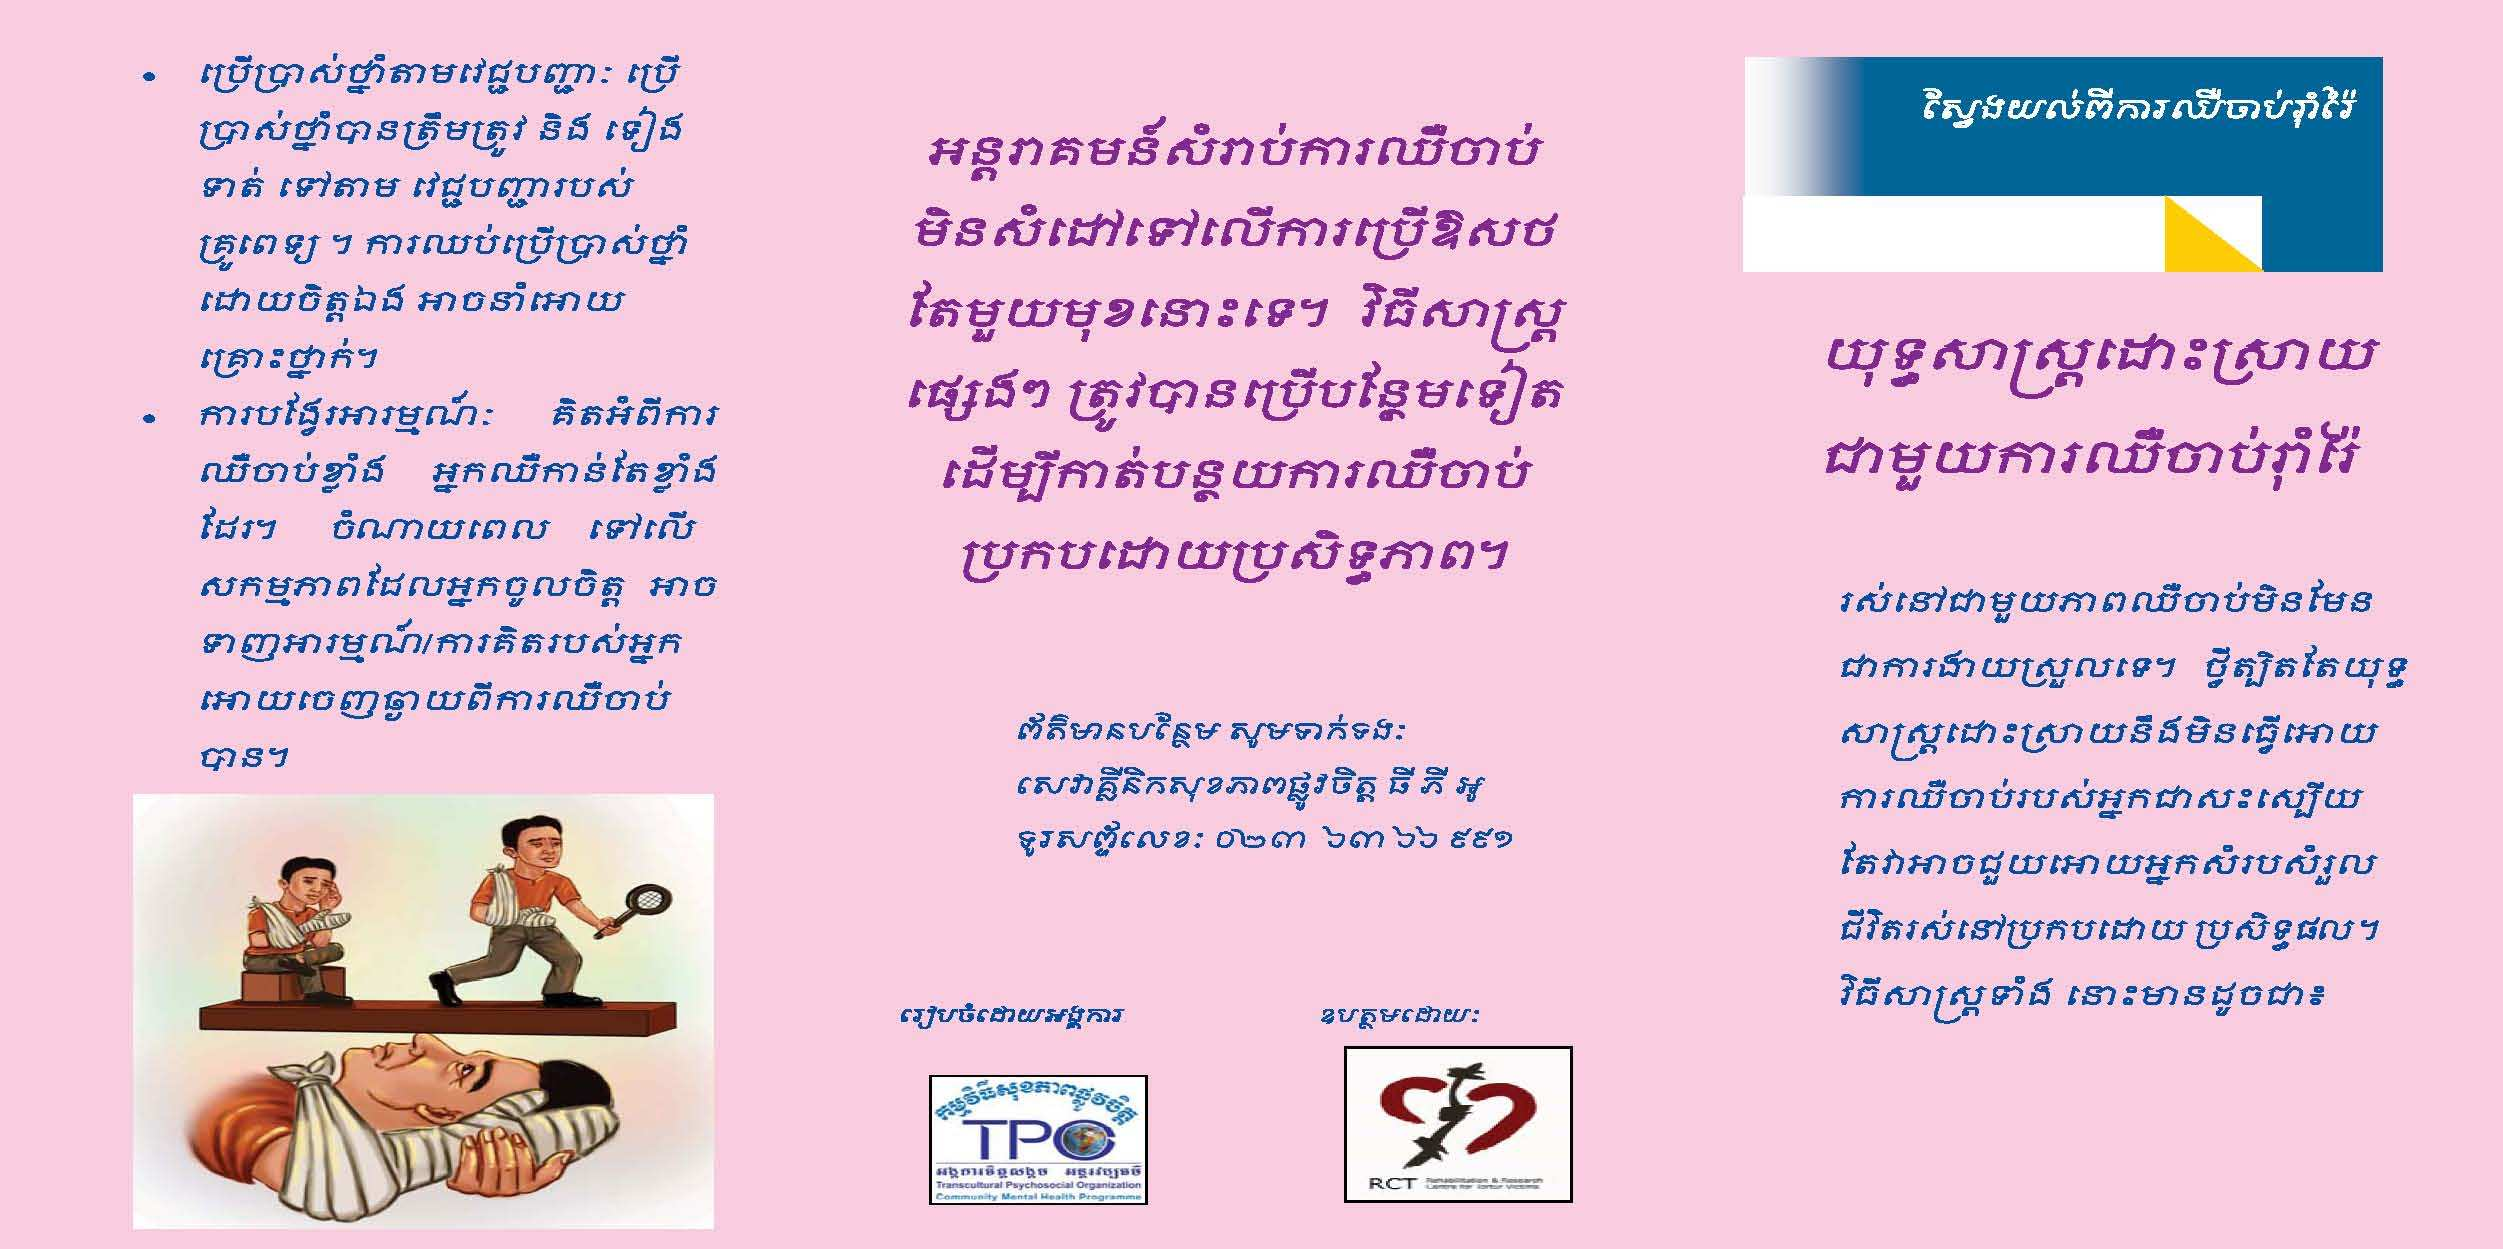 Leaflet-Stratergic to deal with chronic pain-khmer